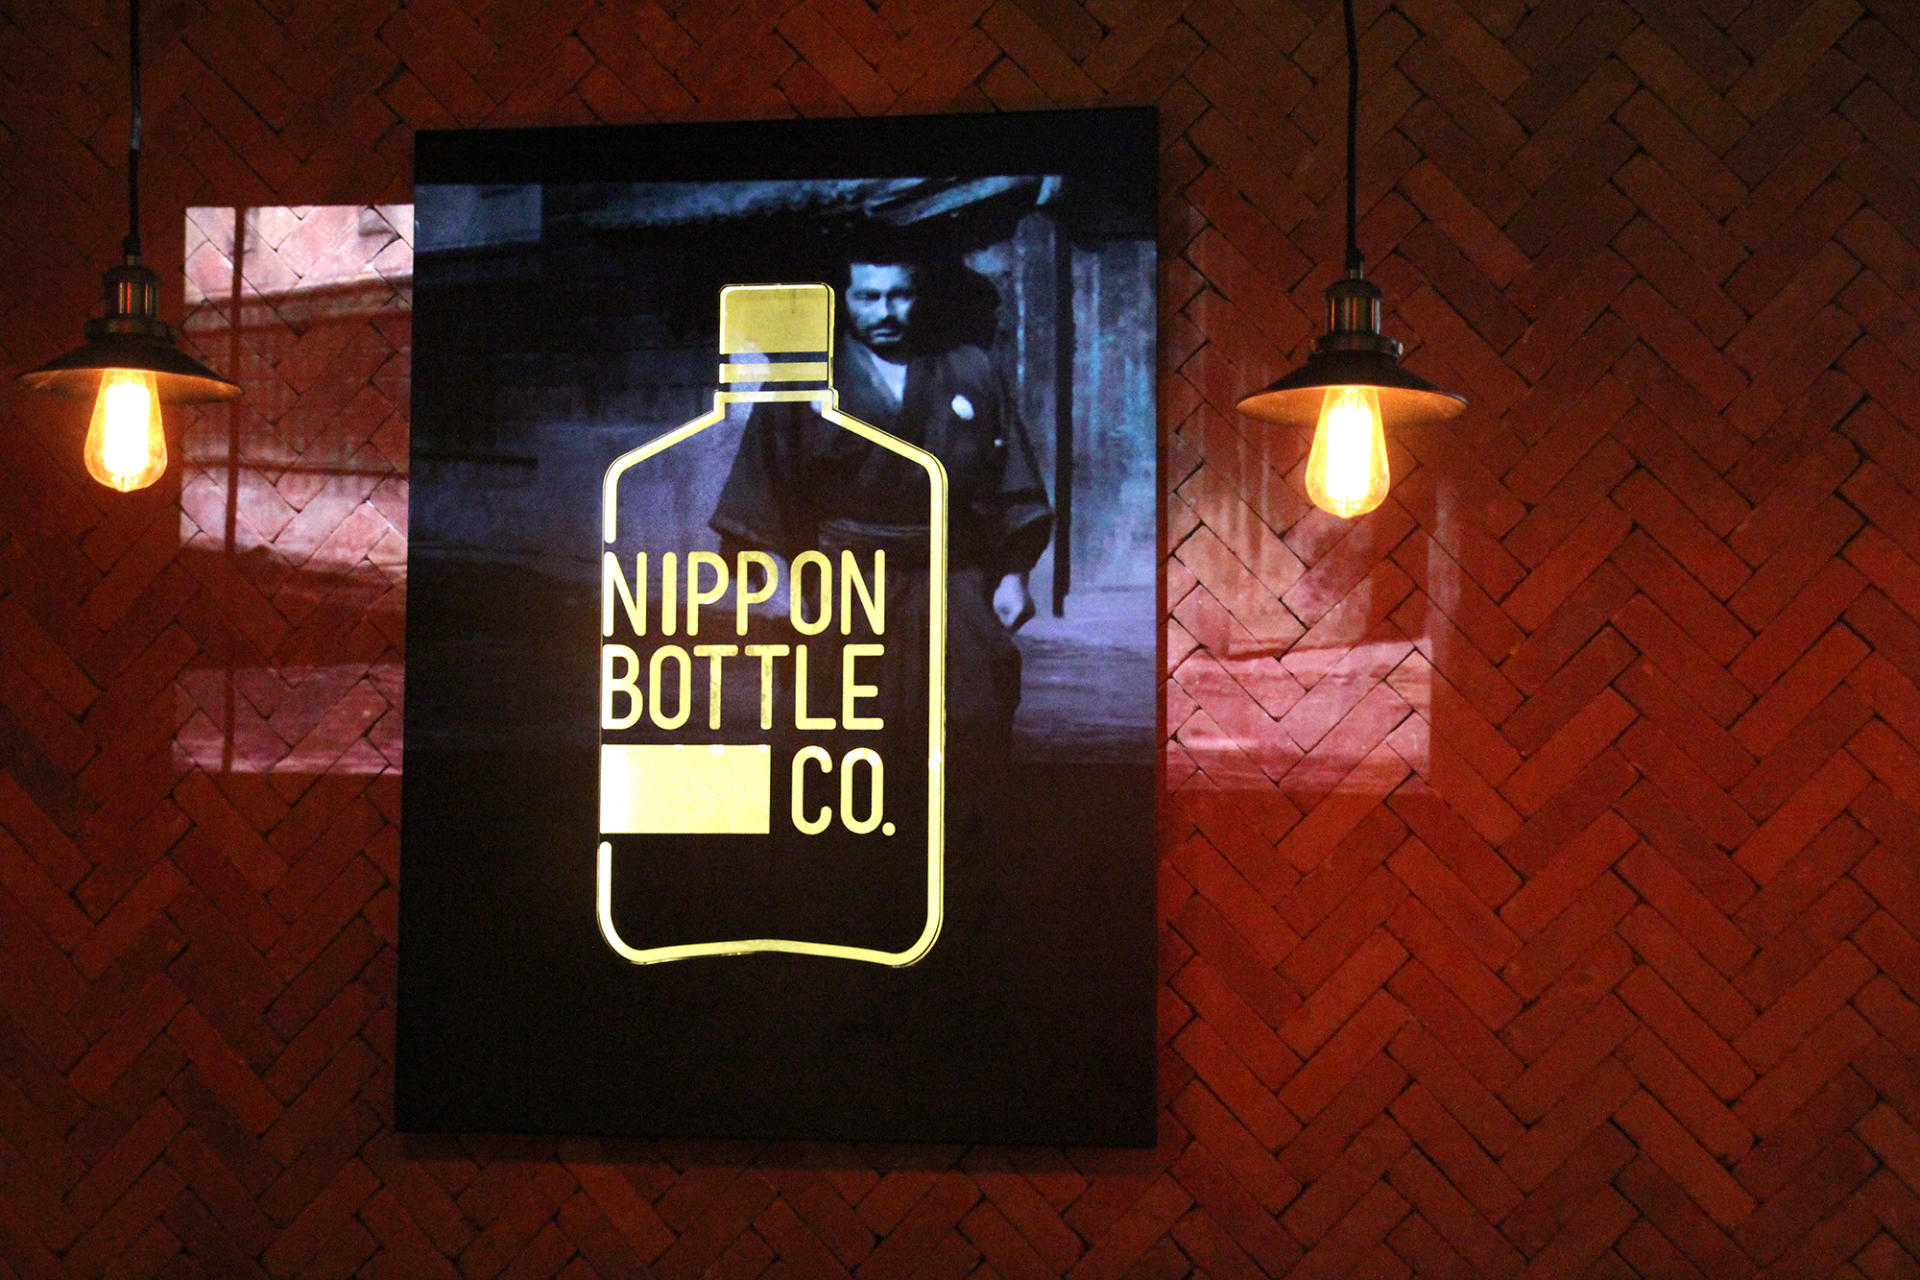 Nippon Bottle Co. - godesto.com